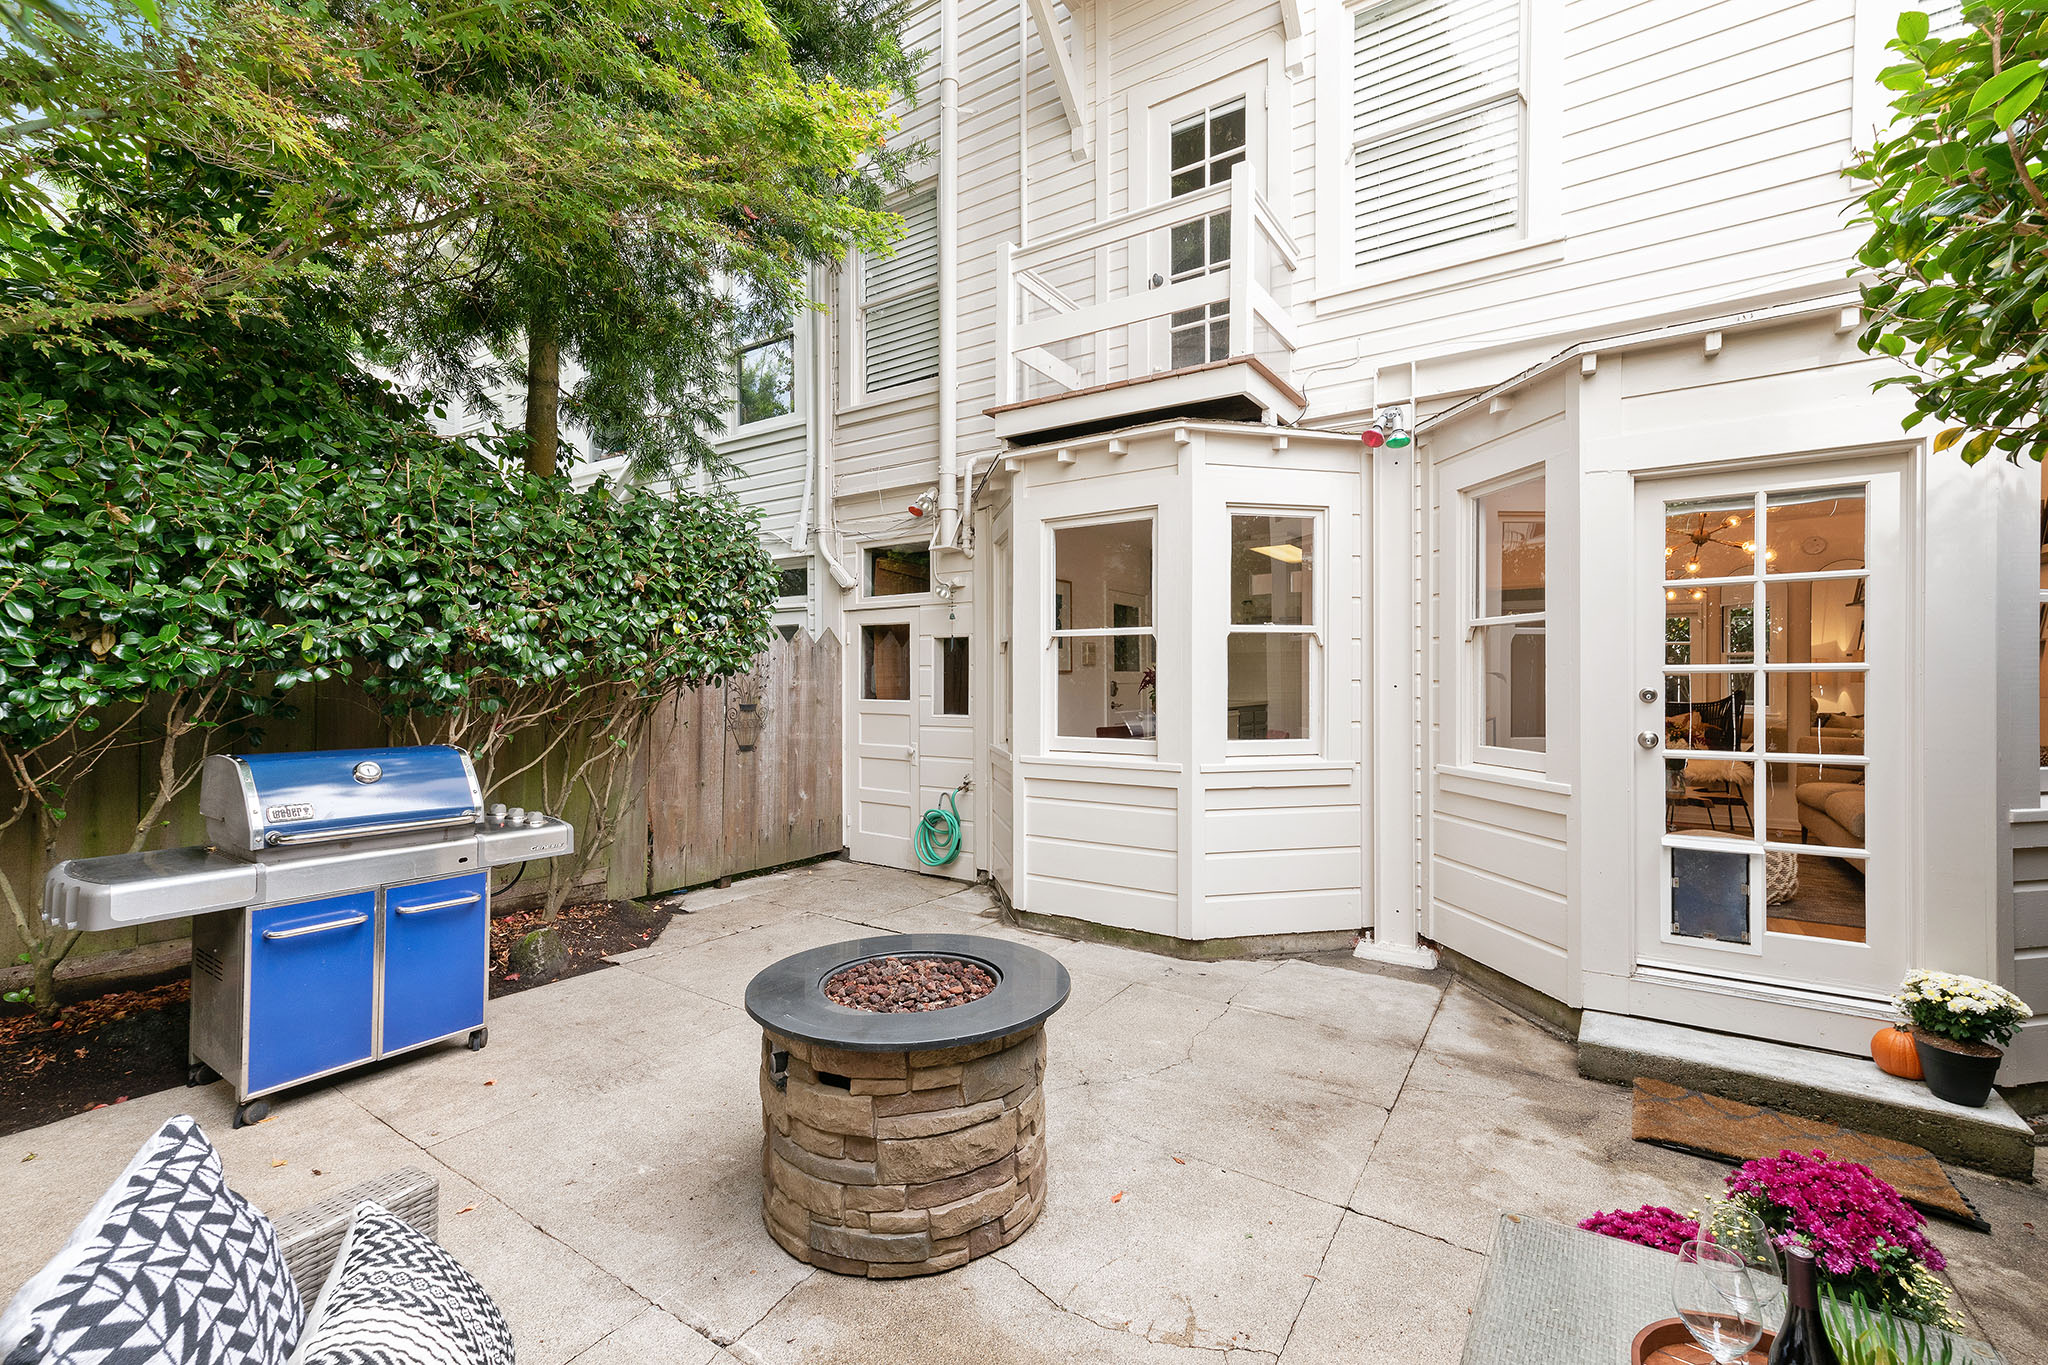 SF Realty - outdoor patio with grill